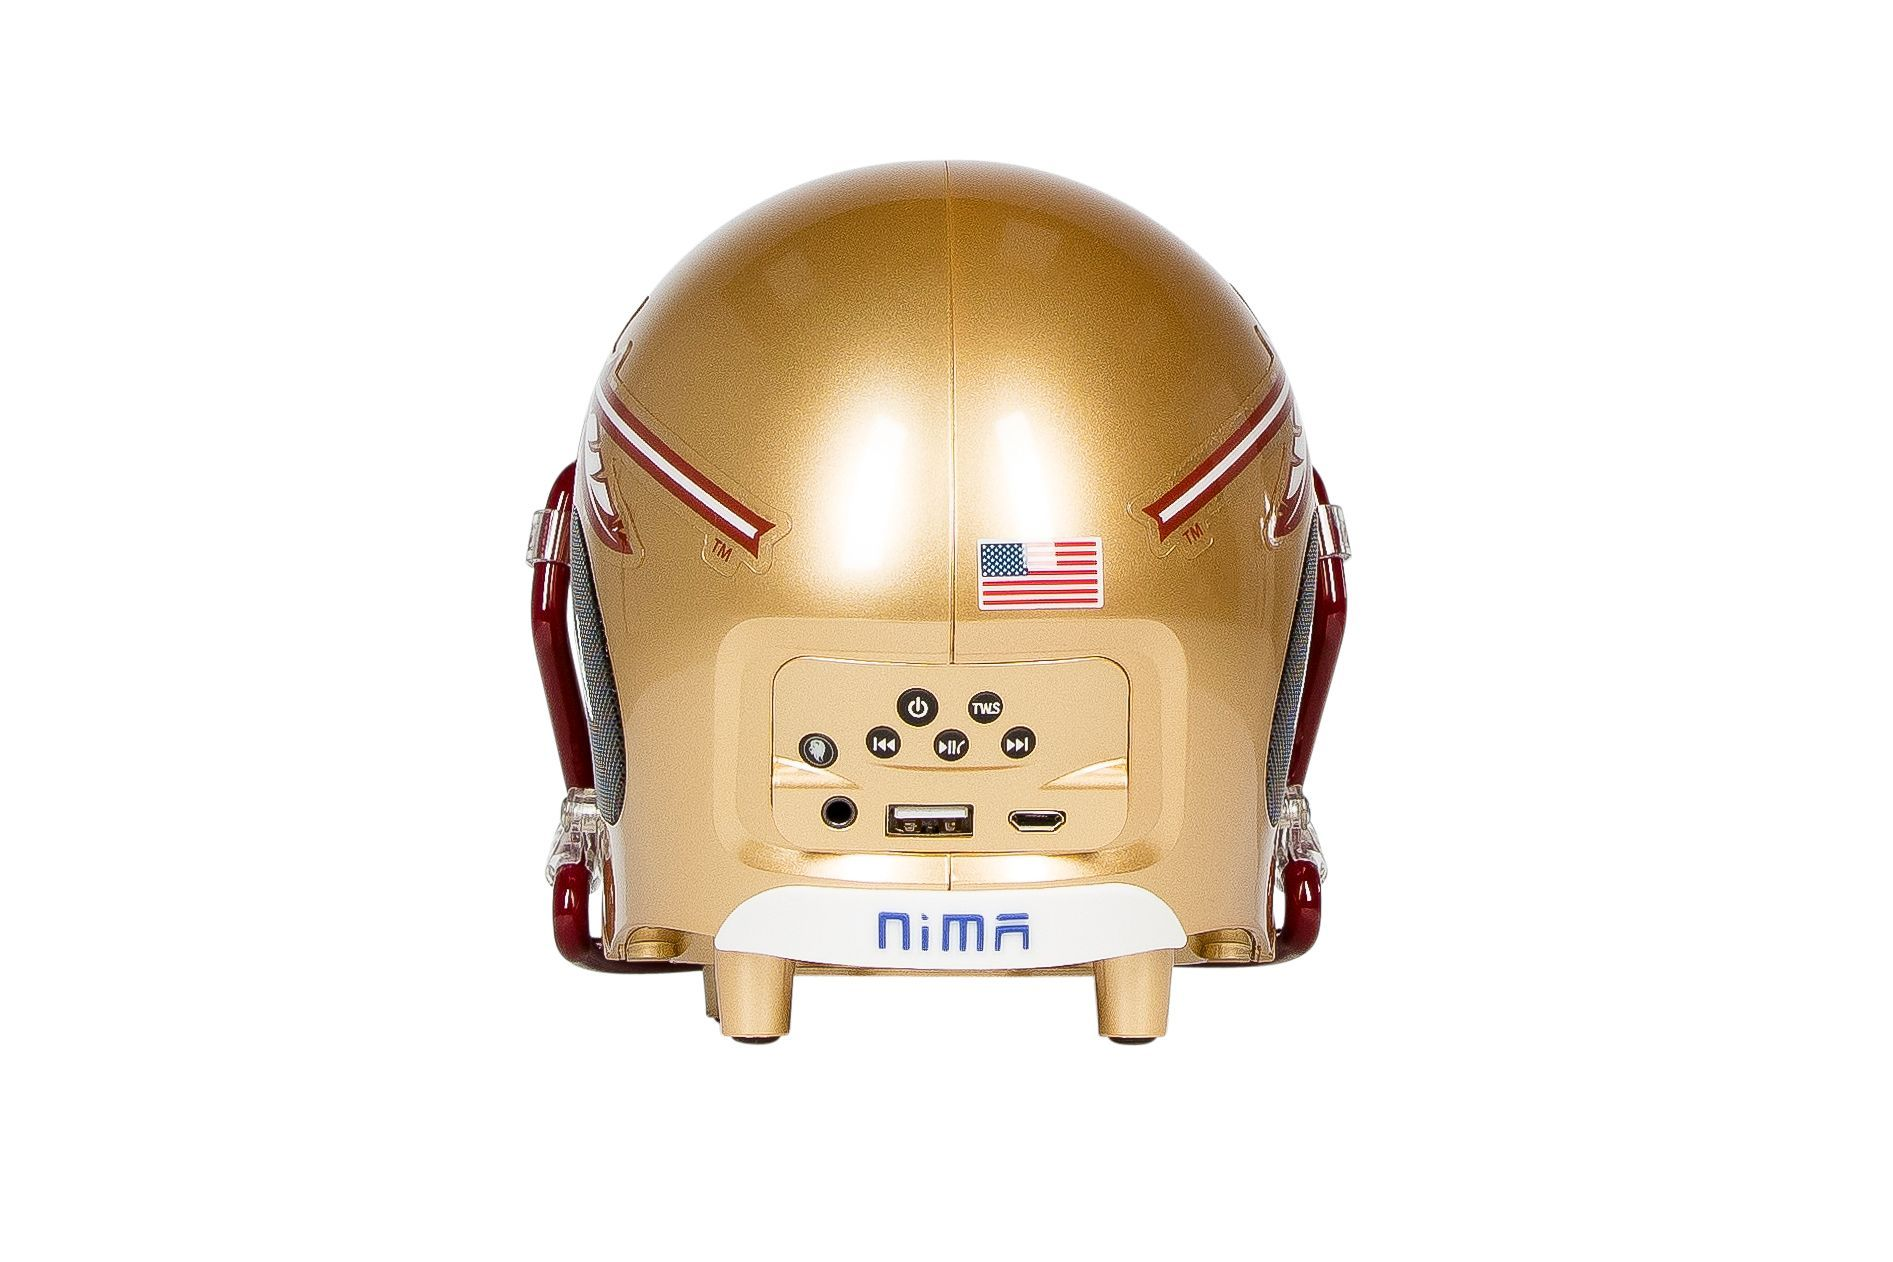 Florida State Seminoles Bluetooth Speaker Helmet - NIMA Speakers